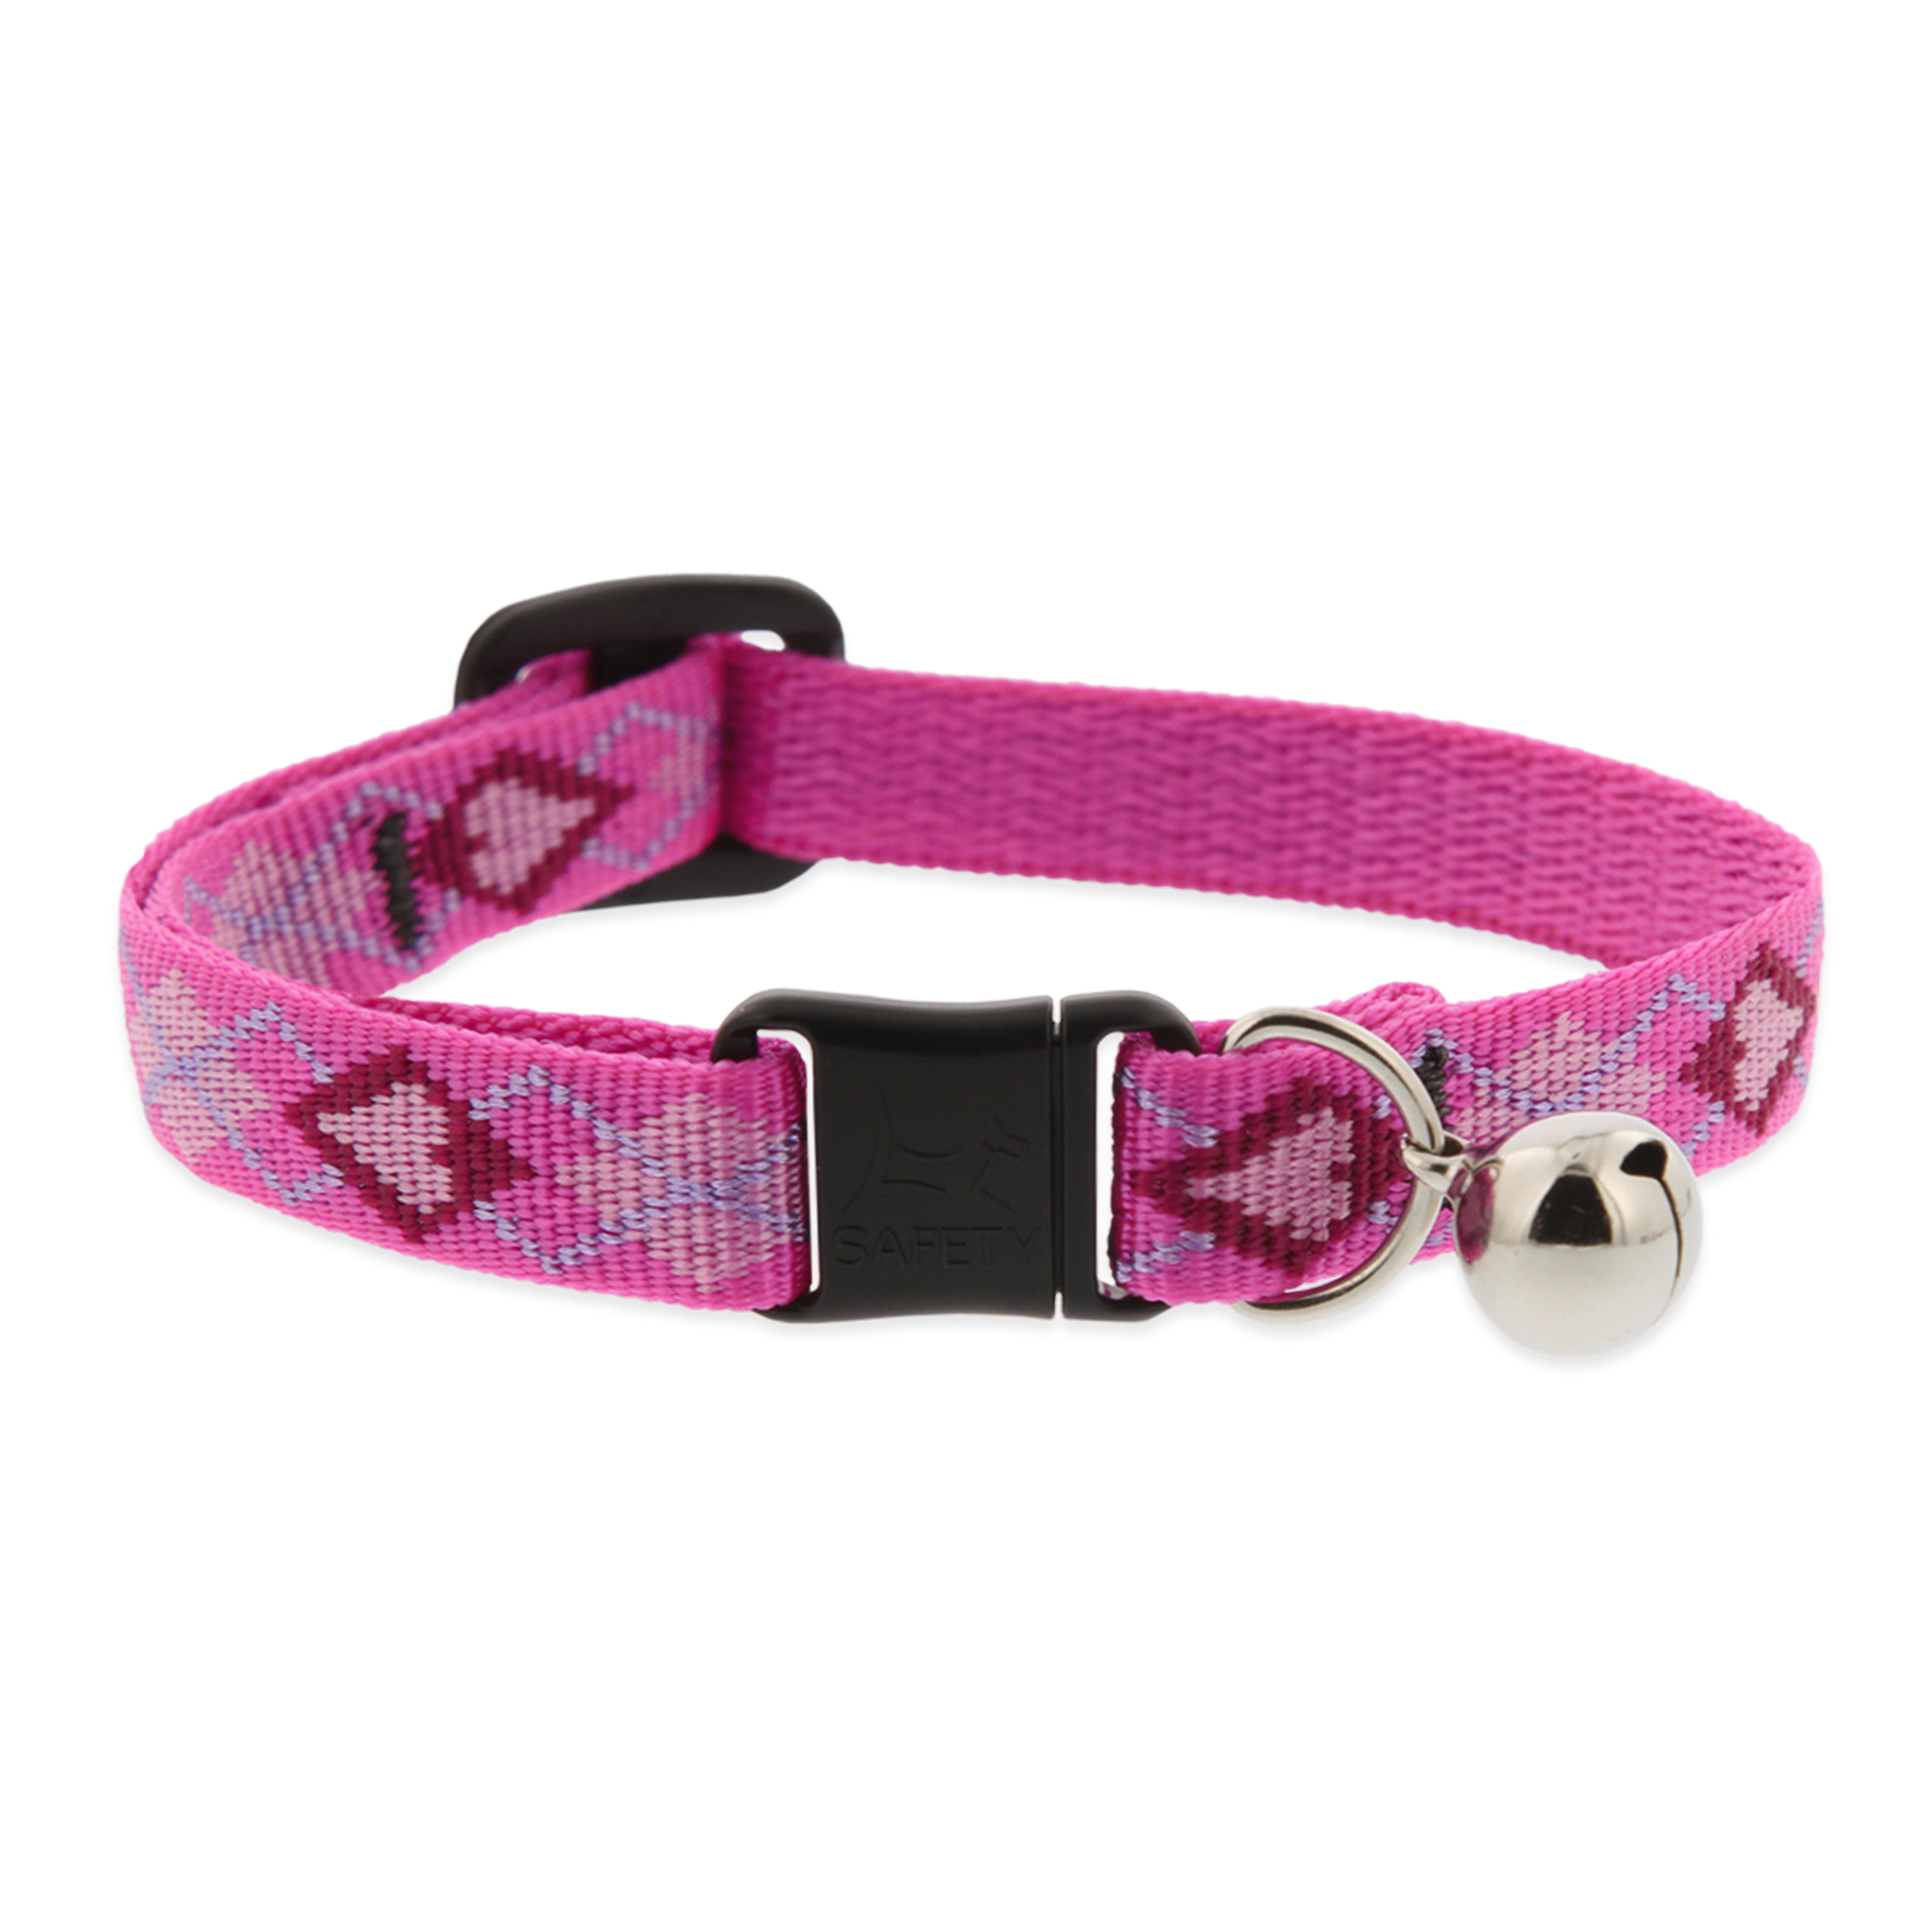 1/2in Puppy Love Cat w/ bell 8-12 Adj. Collar